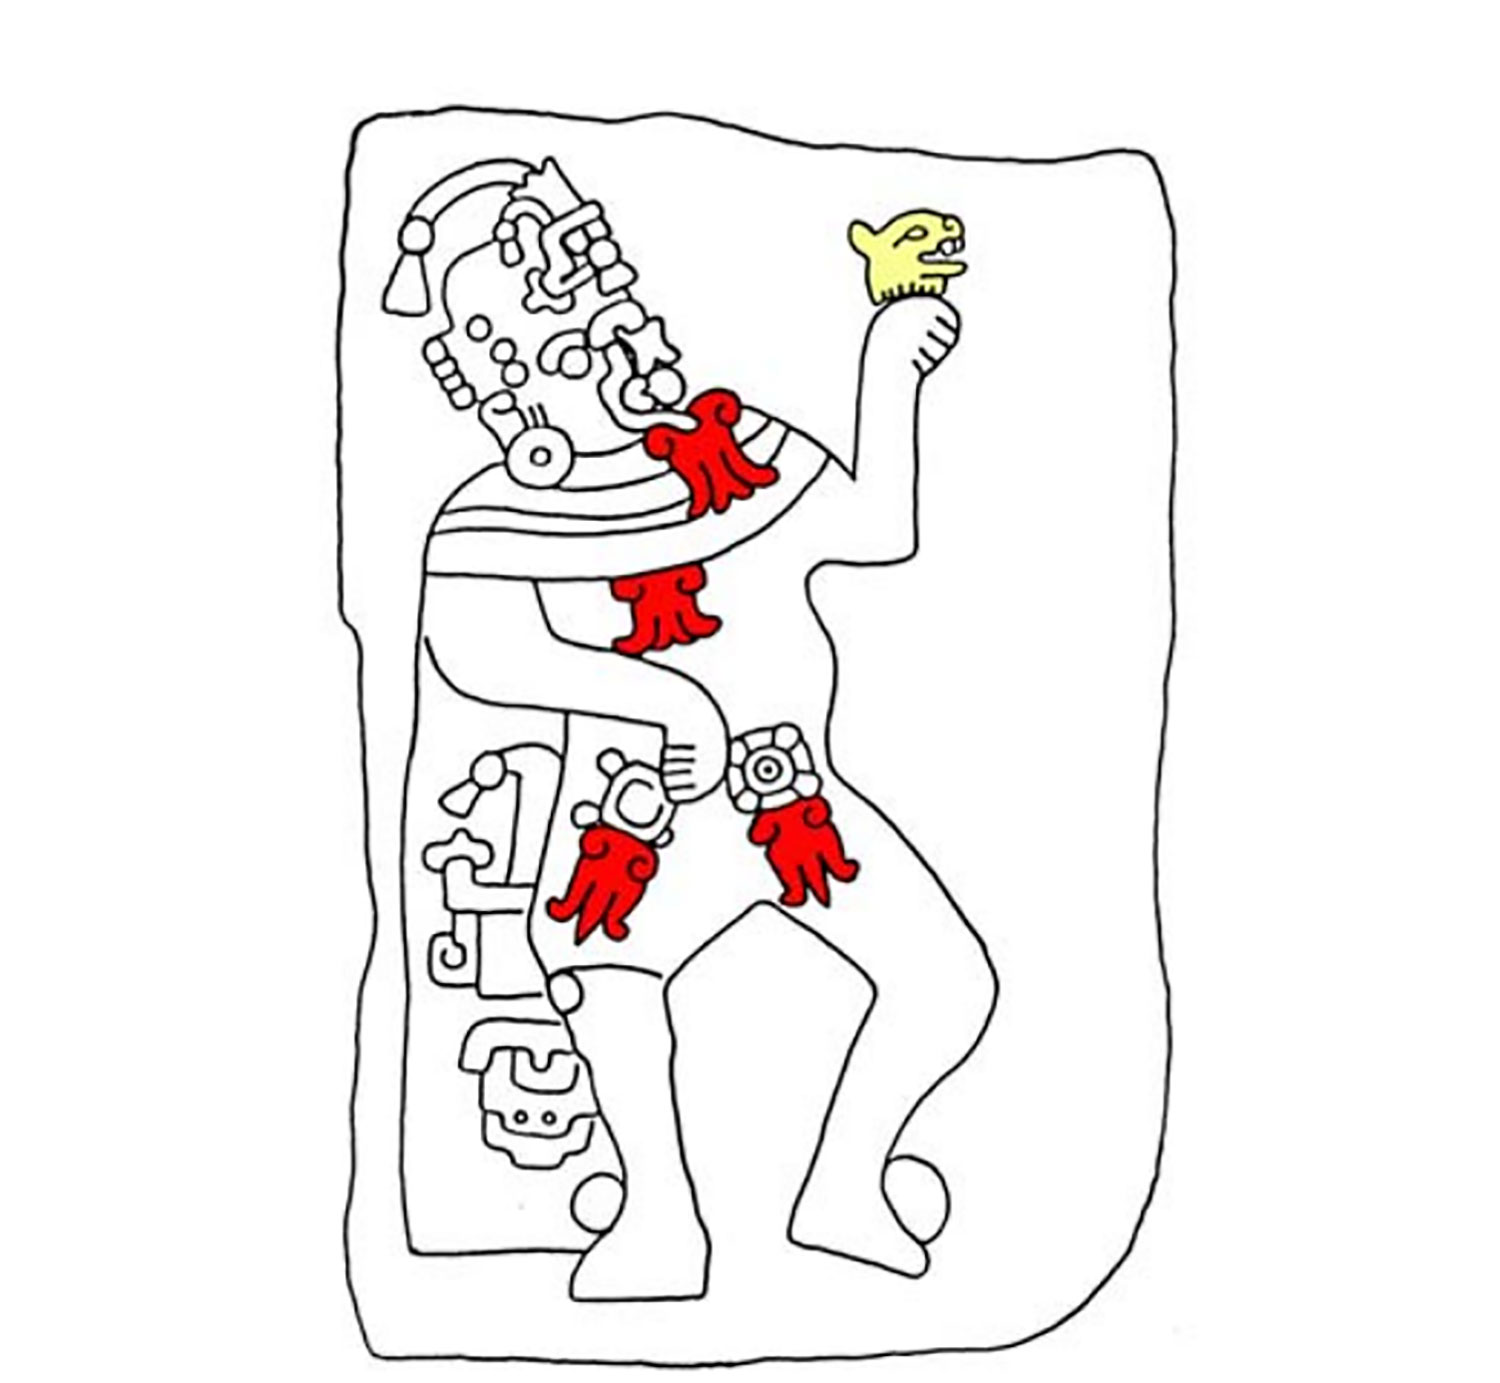 The Storm God impersonator (priest or ruler) holding a decapitated head. Blood drips from the mouth onto his torso:  famsi.org .